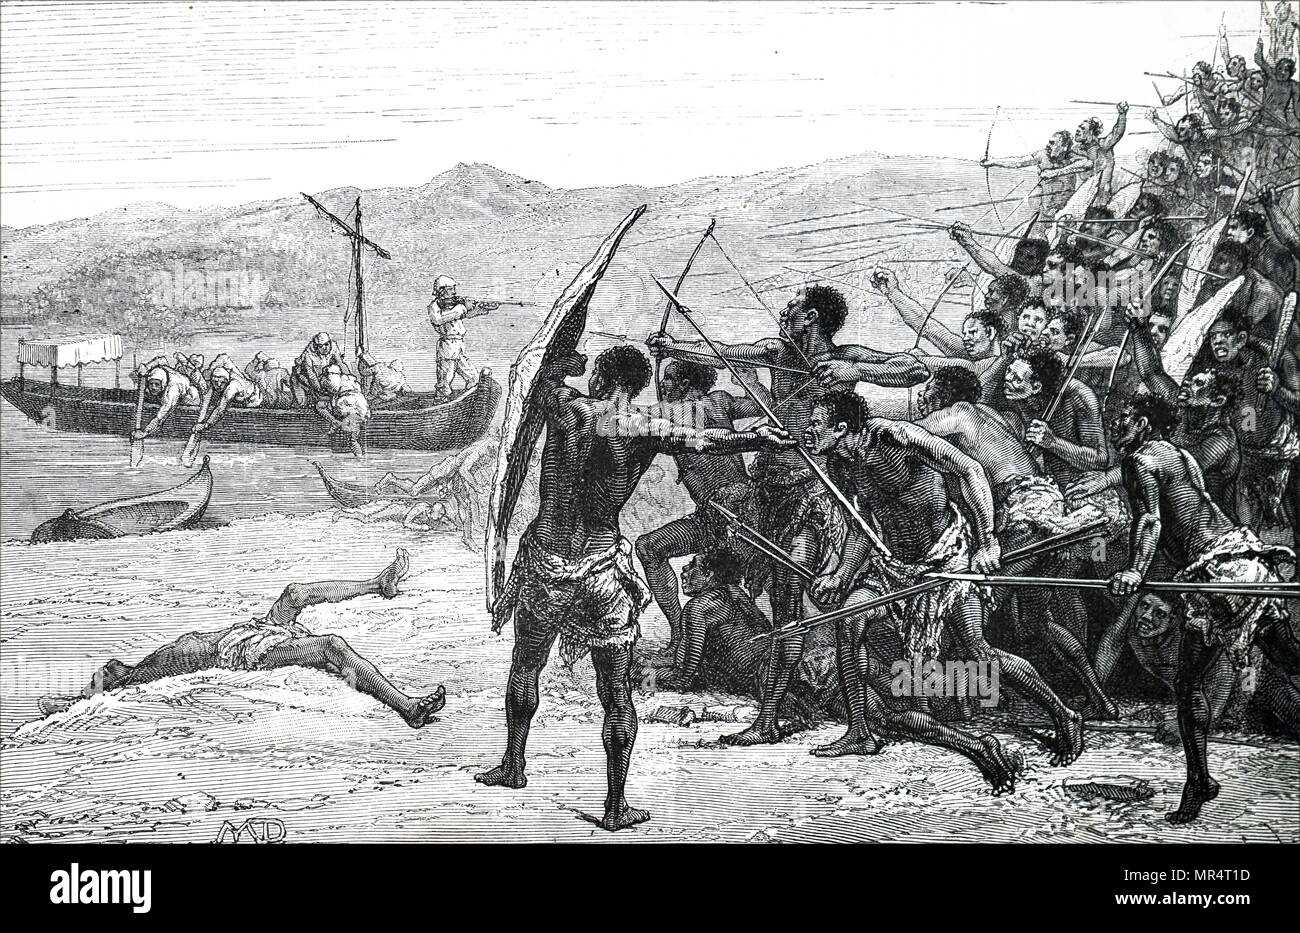 Engraving depicting the 'Lady Alice' being attacked at Bambireh. Dated 19th century - Stock Image